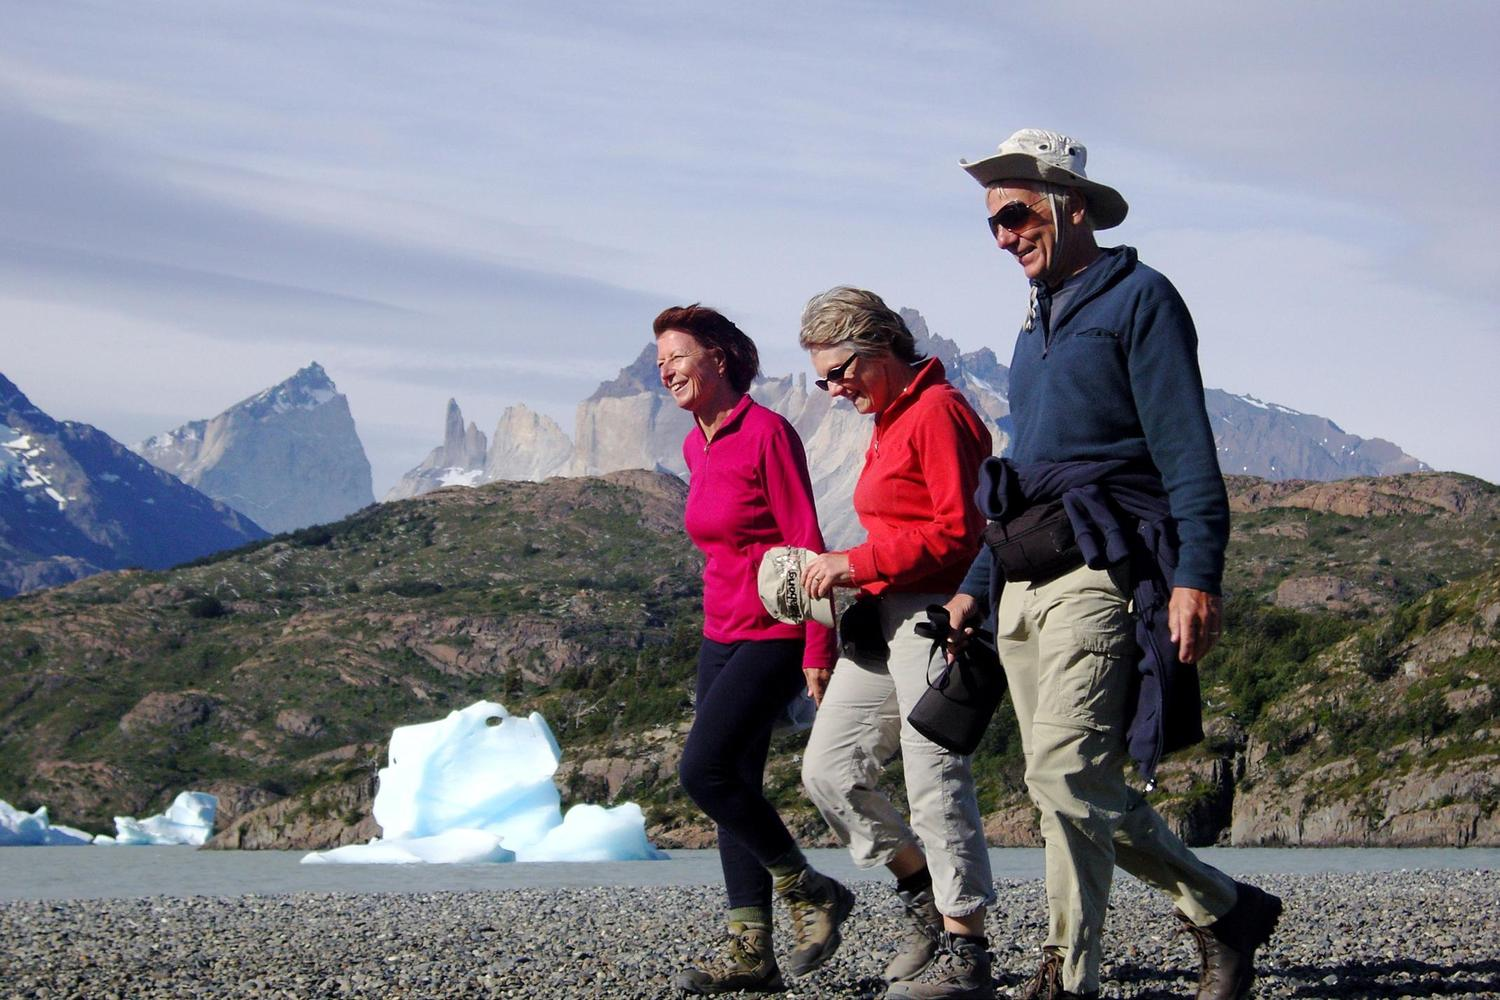 Walking along 'iceberg' beach inside Torres del Paine